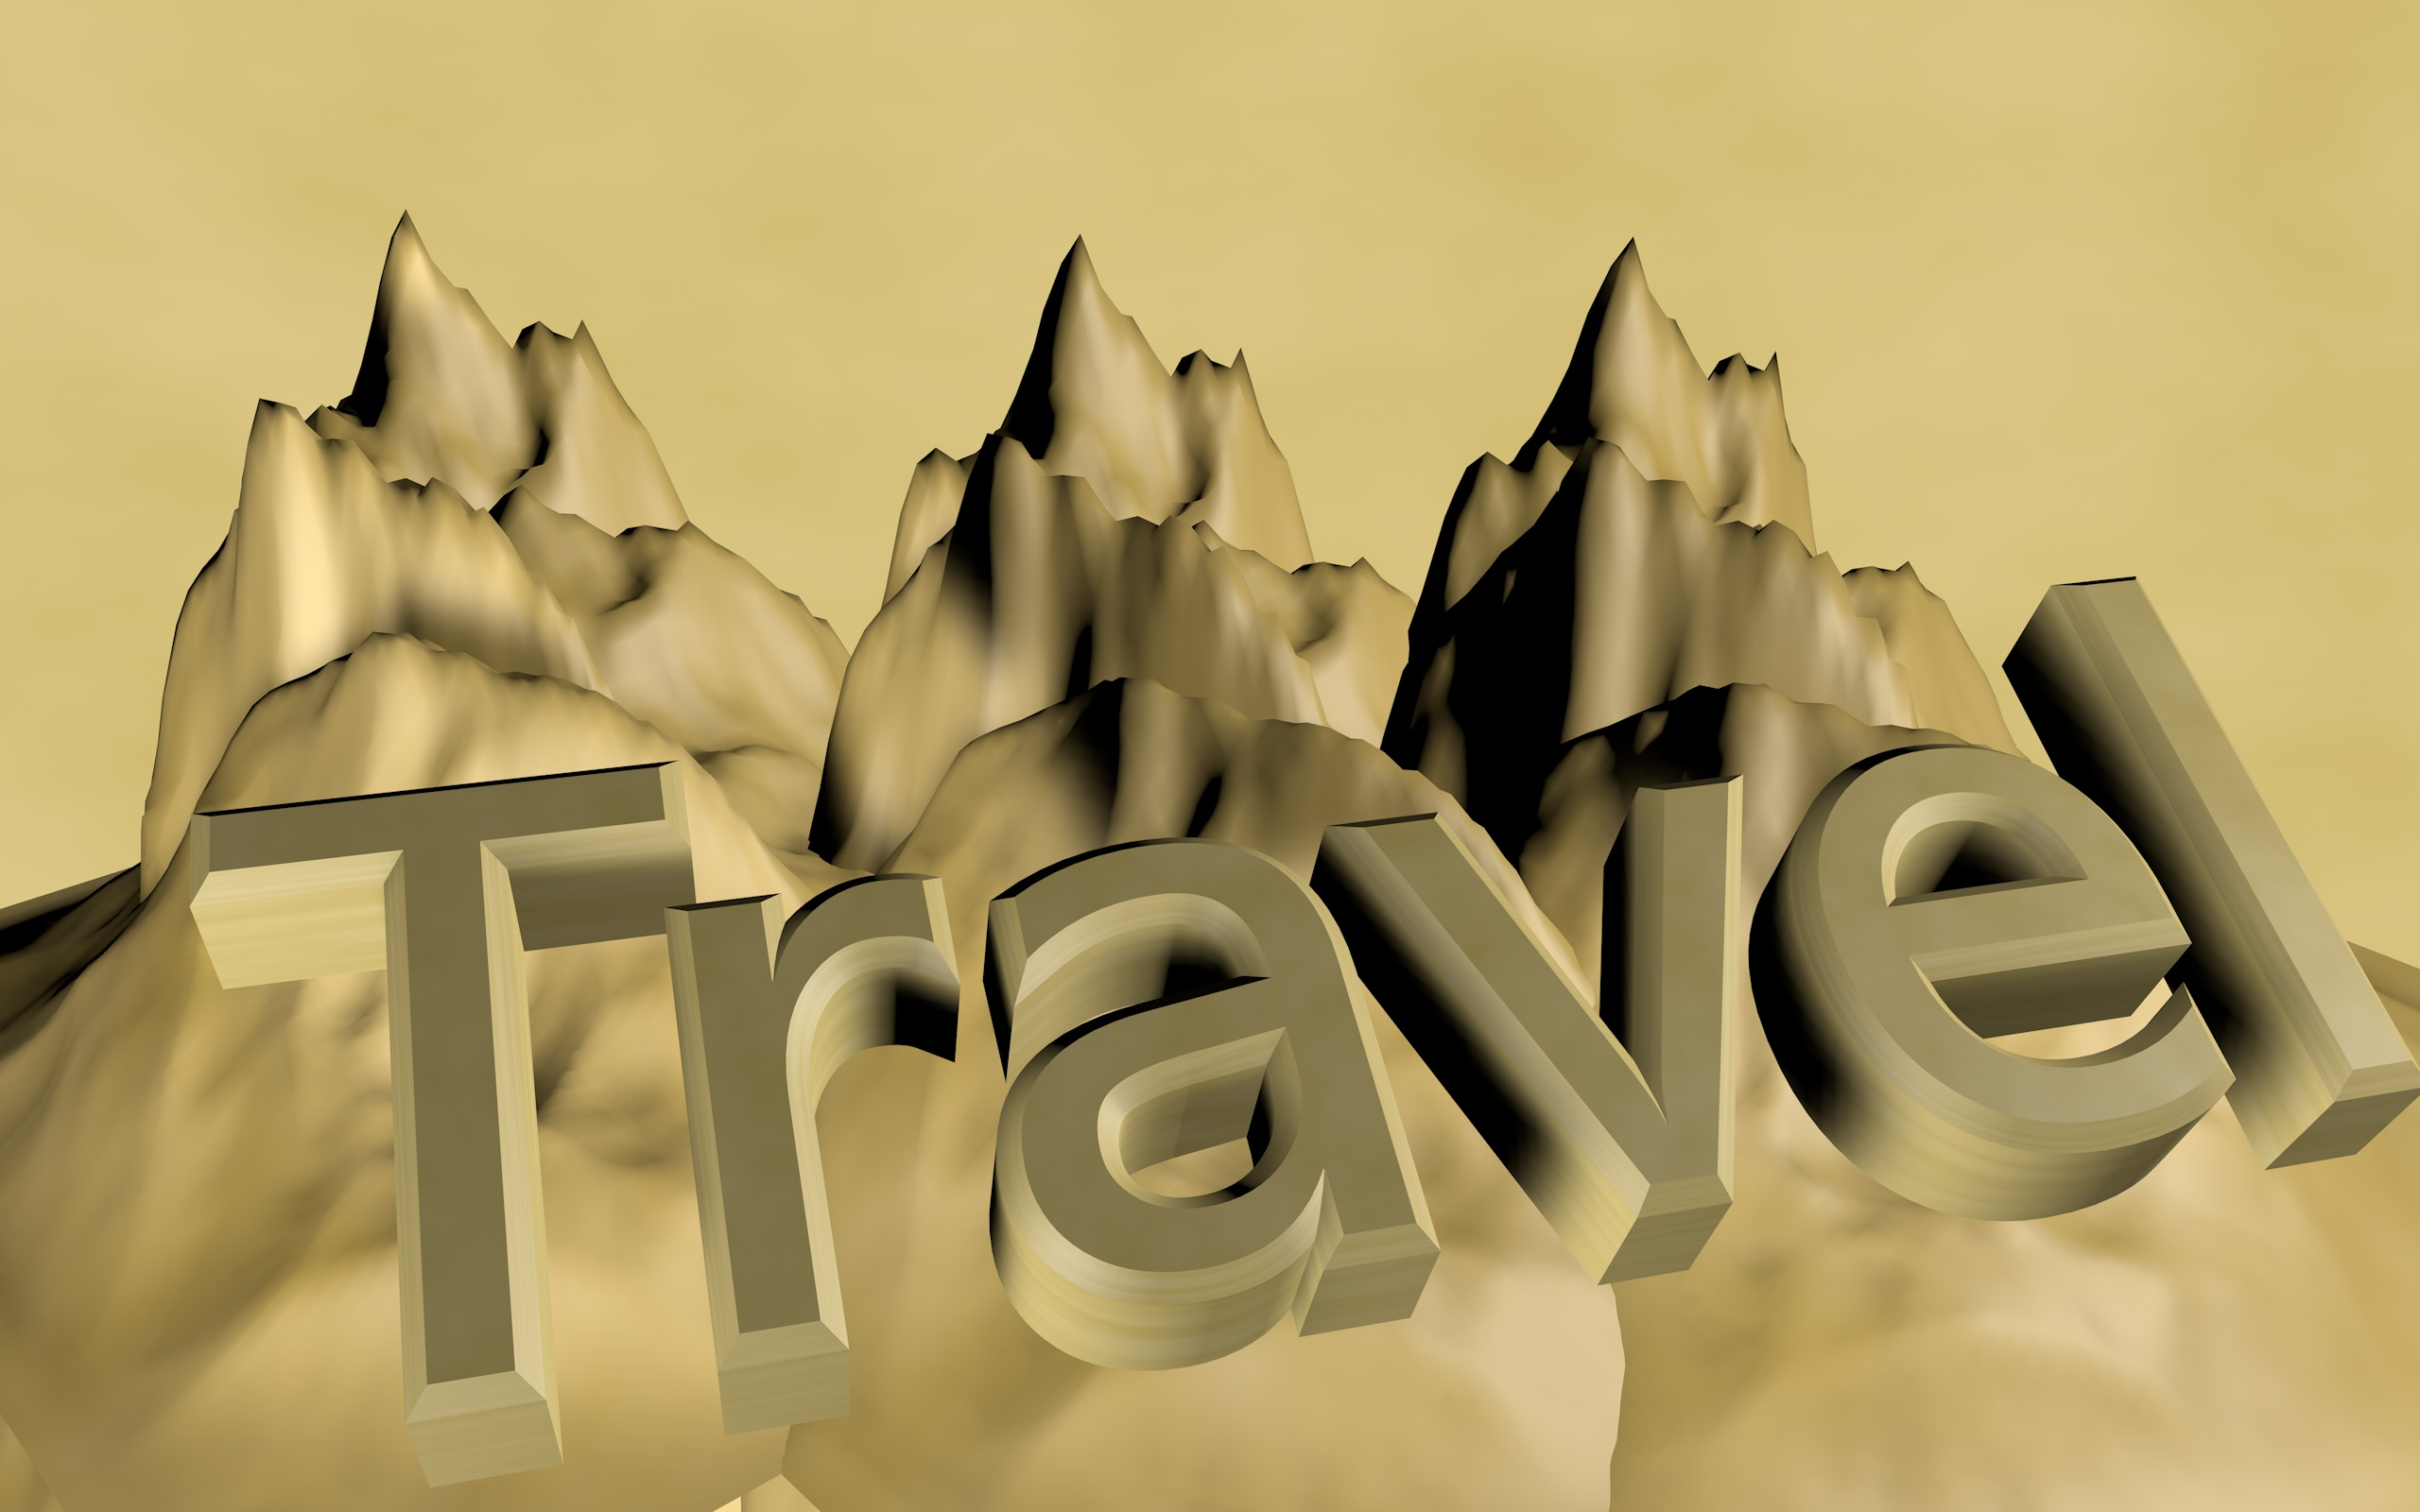 Travel, 3drender, 3dtext, Adventure, Hiking, HQ Photo